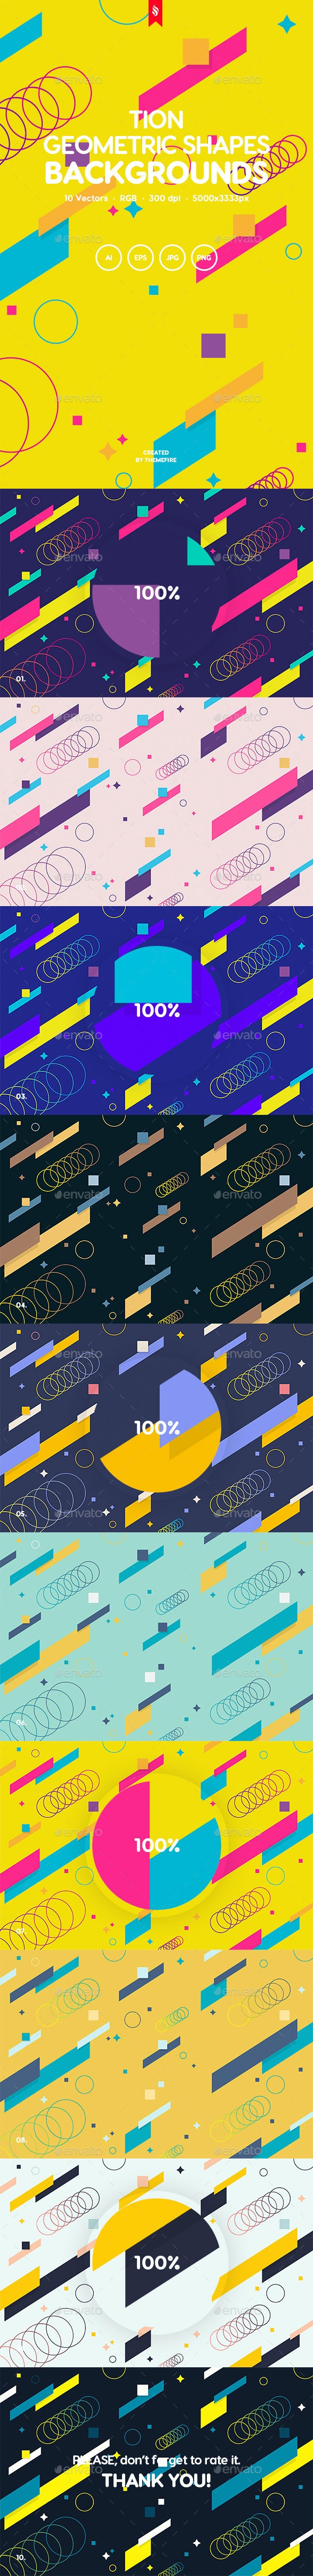 Tion - Abstract Motion Geometric Shapes Backgrounds - Abstract Backgrounds